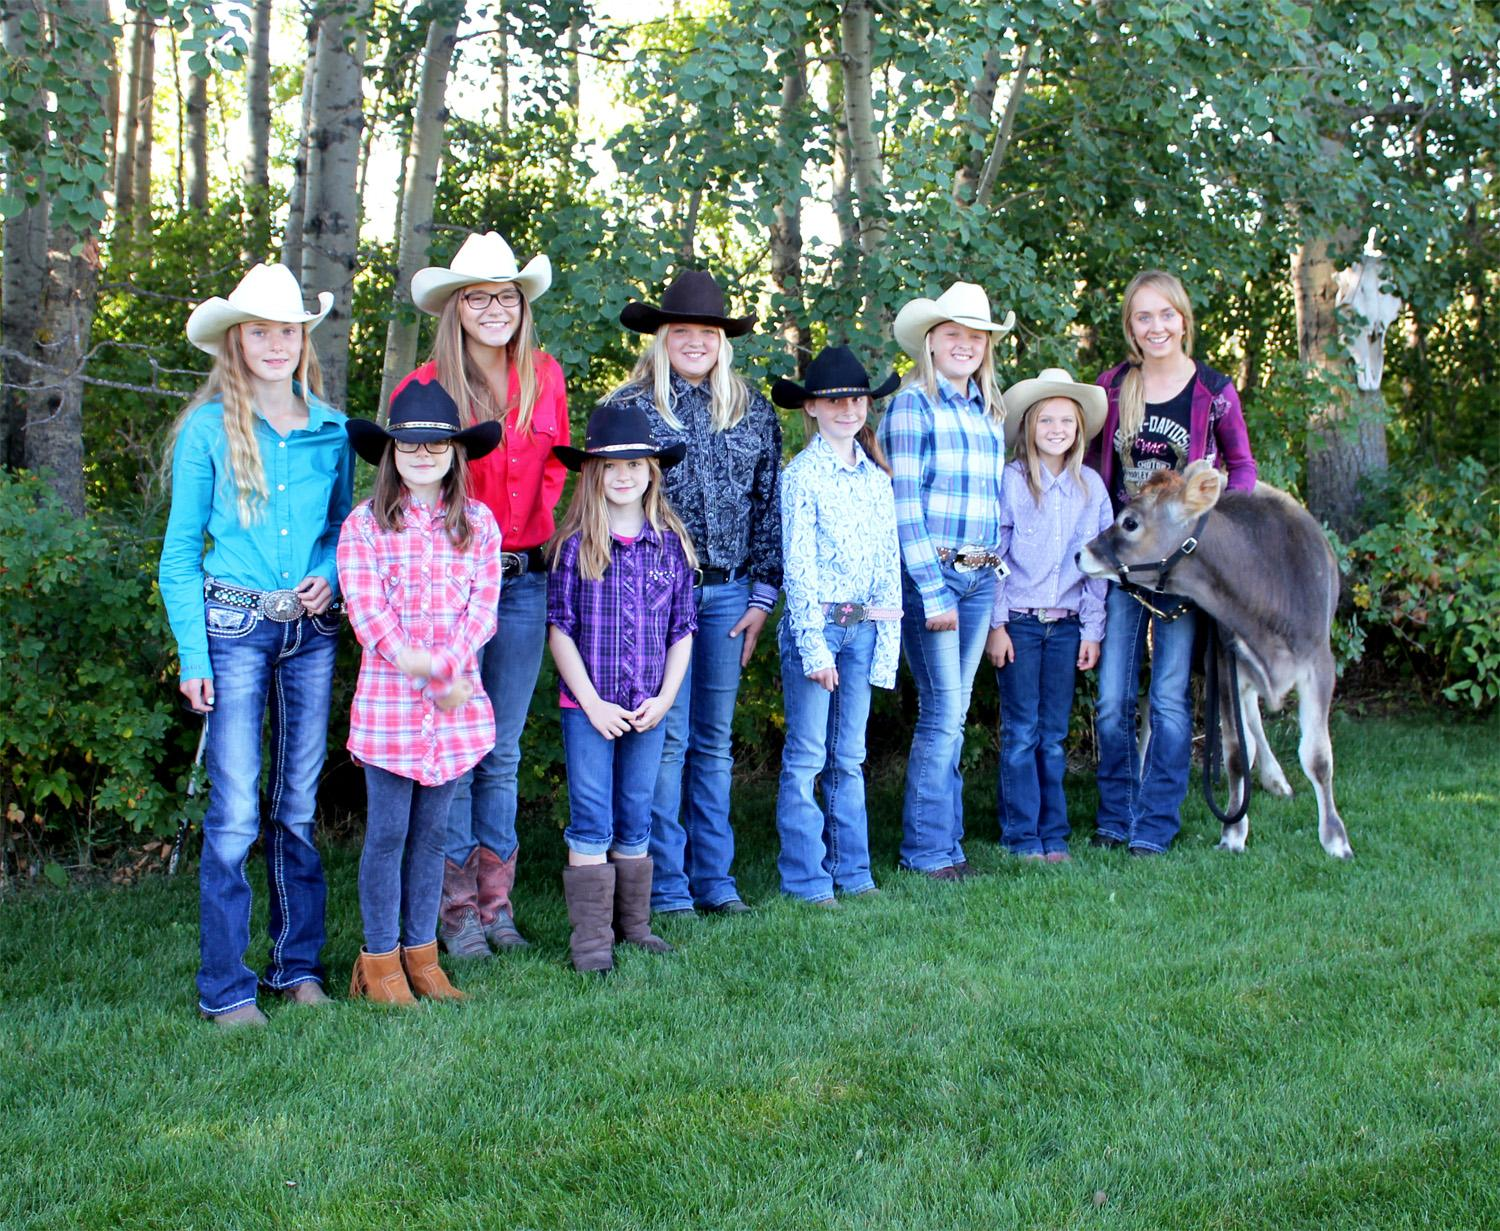 RT @rainycreekranch: Thank you to @Amber_Marshall  for bringing our new baby Memphis to Rainy Creek Ranch... http://t.co/VmCQikttZb